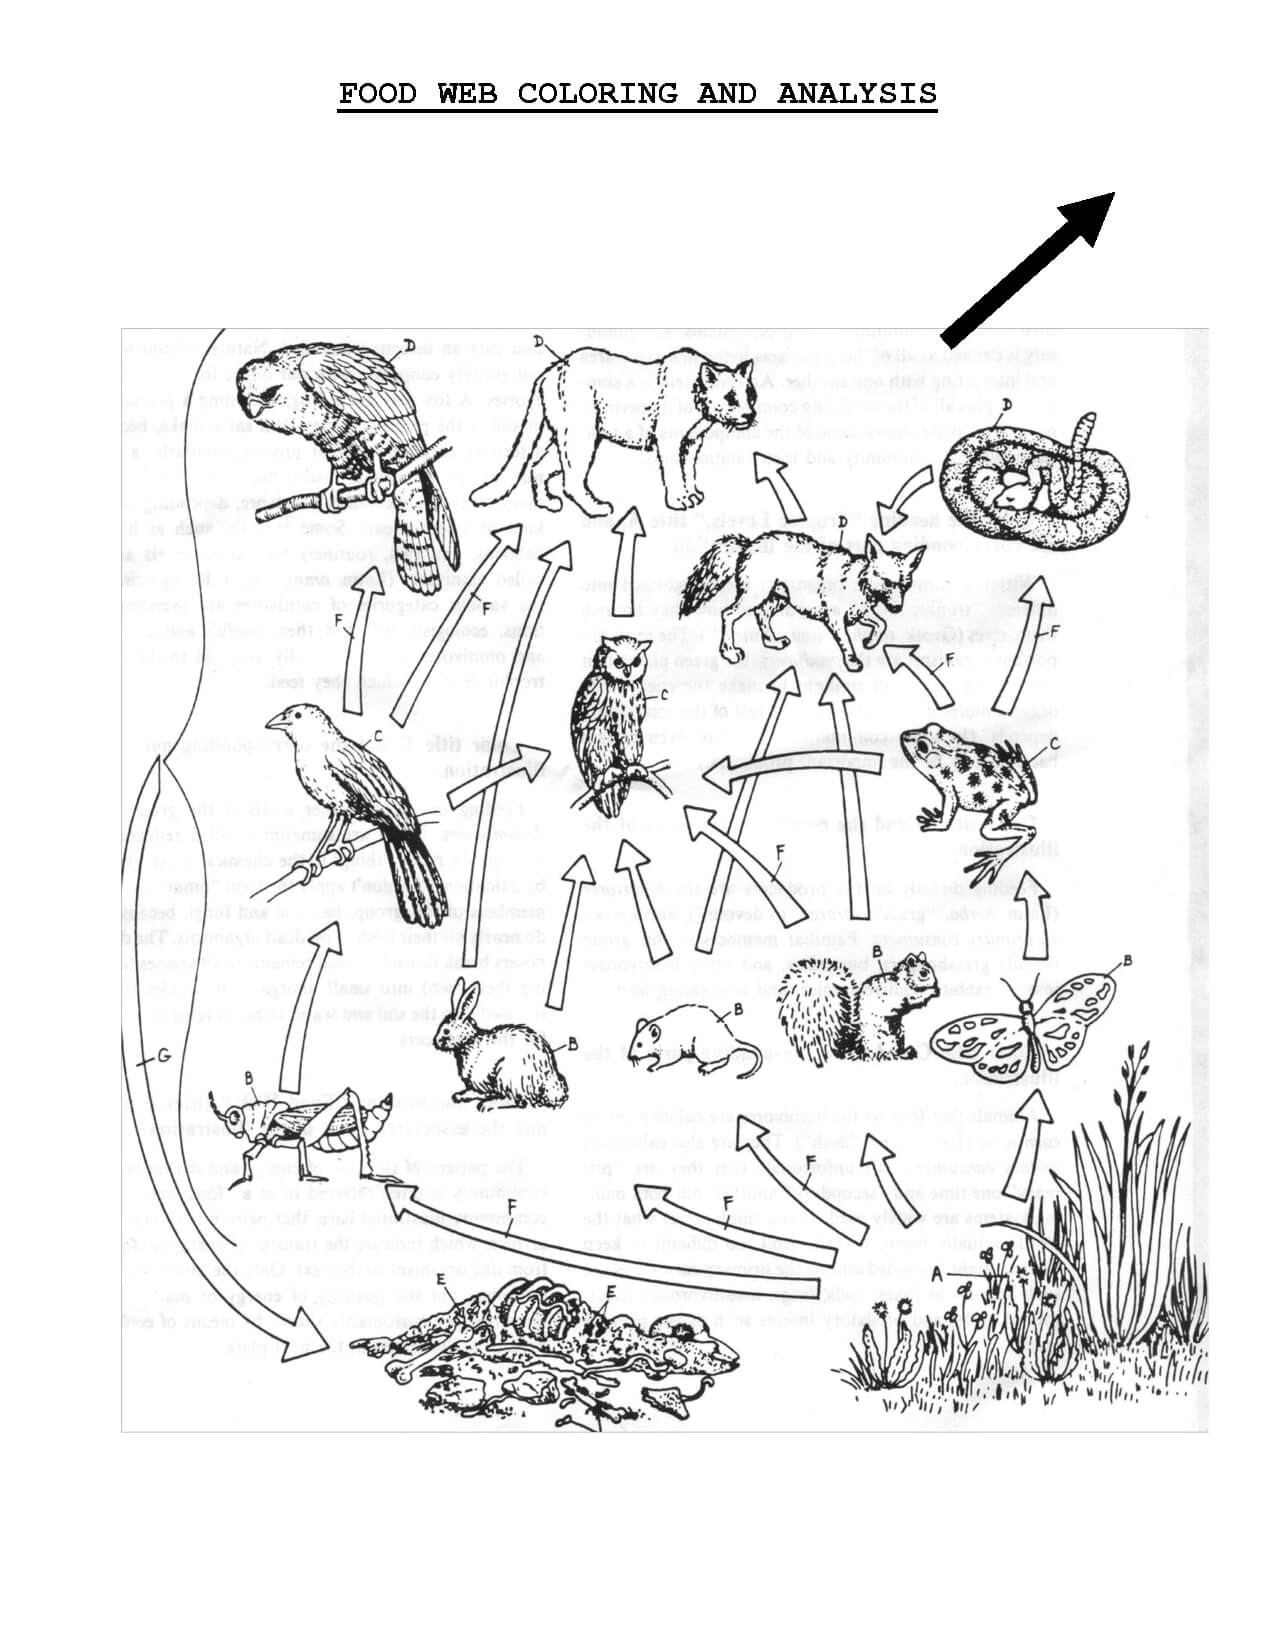 Food Web Coloring Sheet   Scope Of Work Template   Teach pertaining to Blank Food Web Template